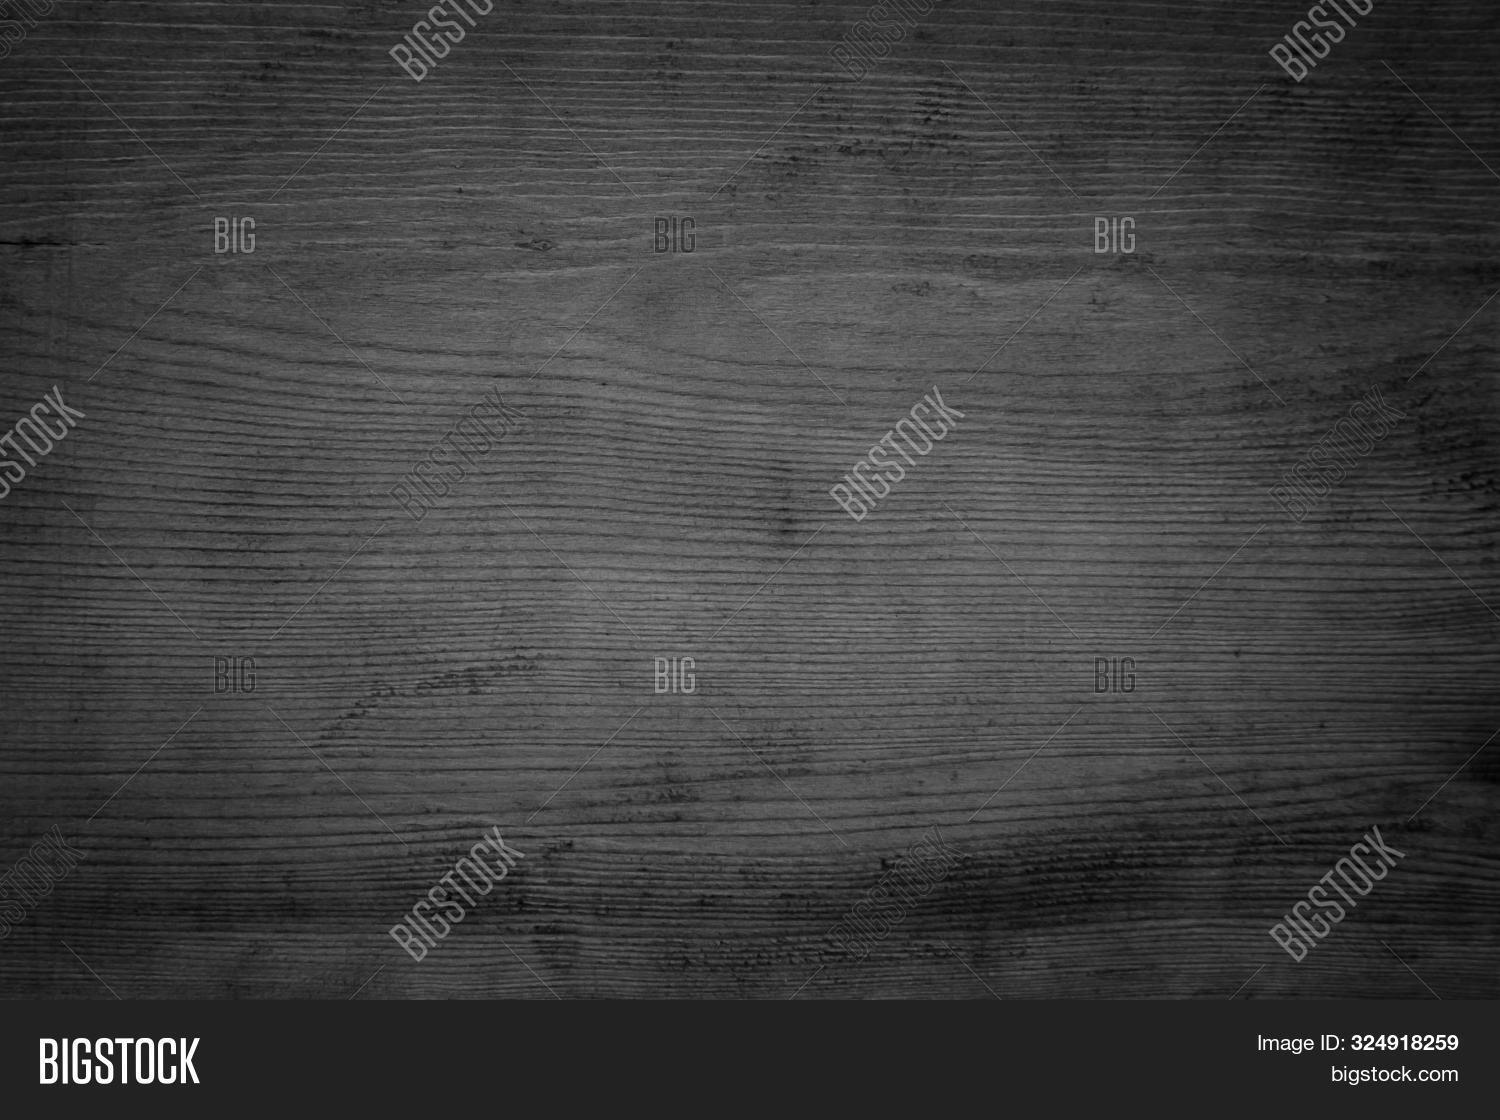 Black Wood Texture Background. Abstract Dark Wood Texture On Black Wall. Aged Wood Plank Texture Pat